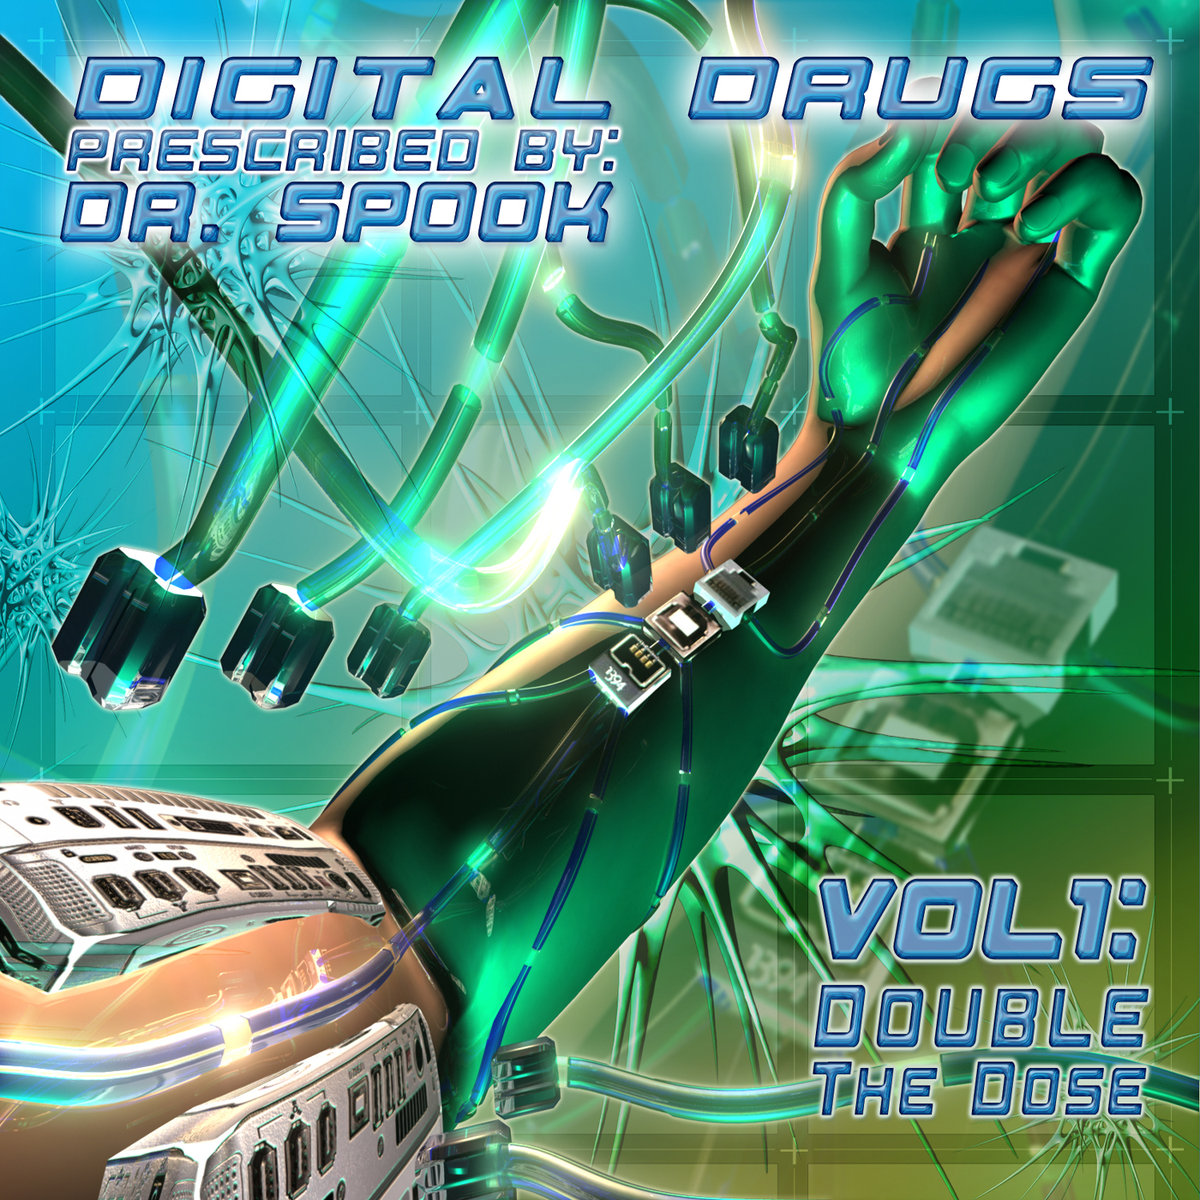 Tsabeat - Intense Radioactive @ 'Various Artists - Digital Drugs Vol.1: Double the Dose (Prescribed by Dr. Spook)' album (electronic, goa)